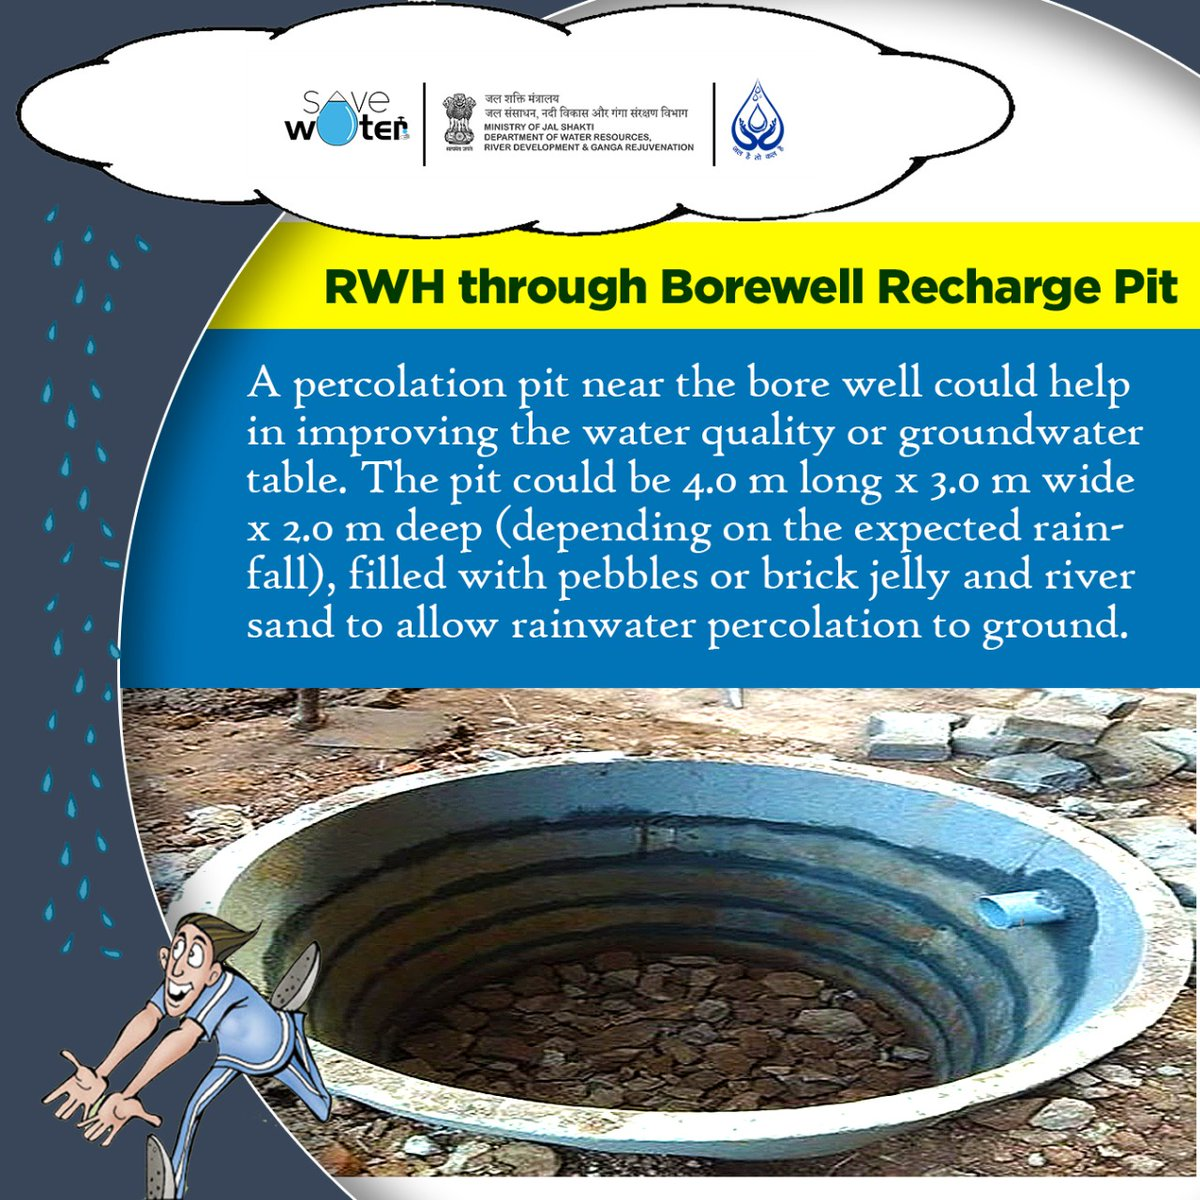 Borewell recharge pit is a great method to bring water back to your dried up borewells.  🌧️ Let's CATCH THE RAIN this monsoon!! #Monsoon2020 #RainwaterHarvesting #SundayMotivation https://t.co/24PqN6lLp8